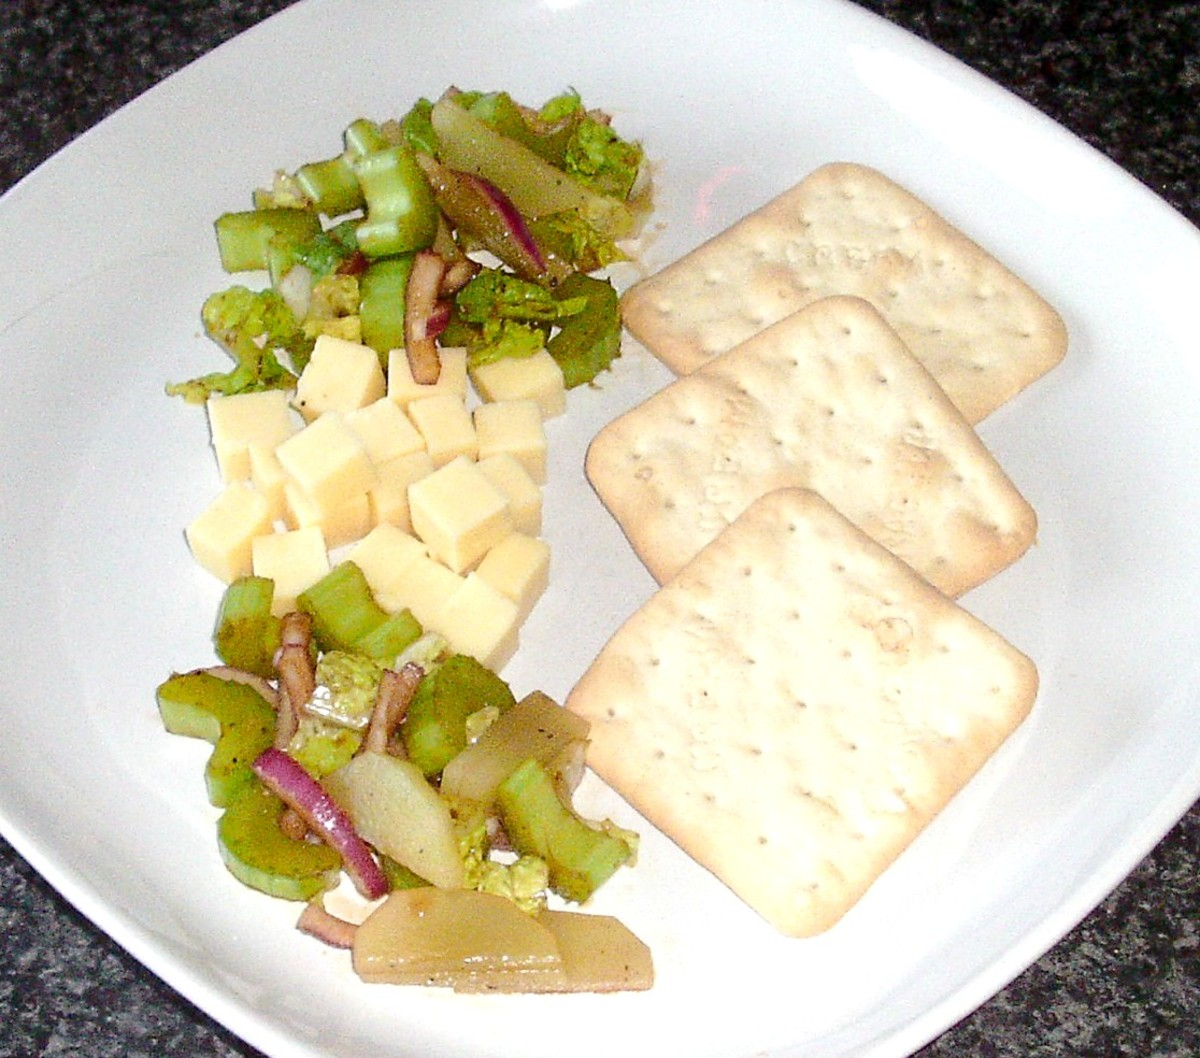 Celtuce and celery balsamic salad with cheddar creese and crackers